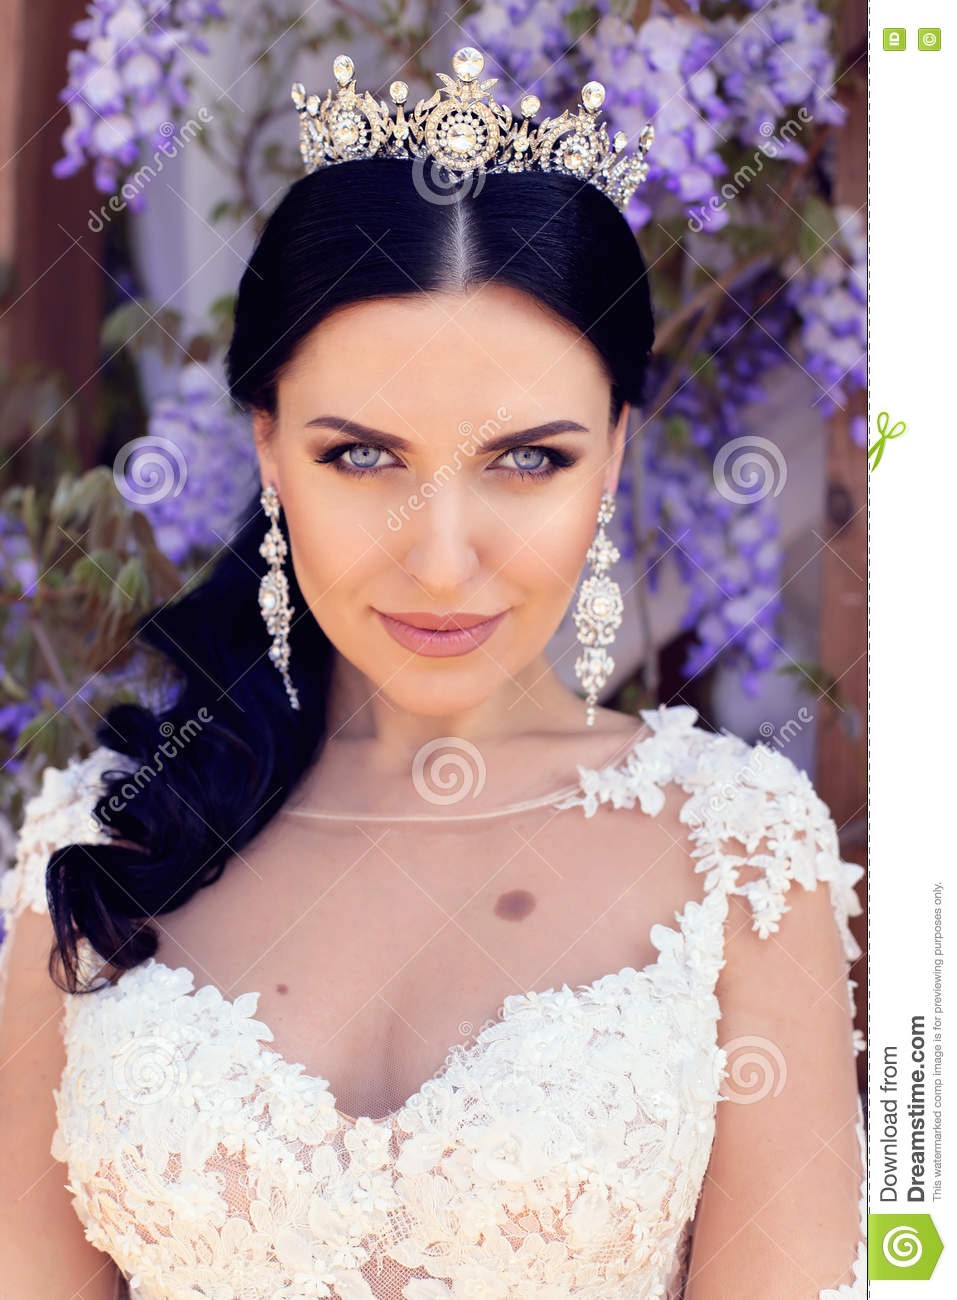 Gorgeous Woman With Dark Hair In Luxurious Wedding Dress Stock Image ...